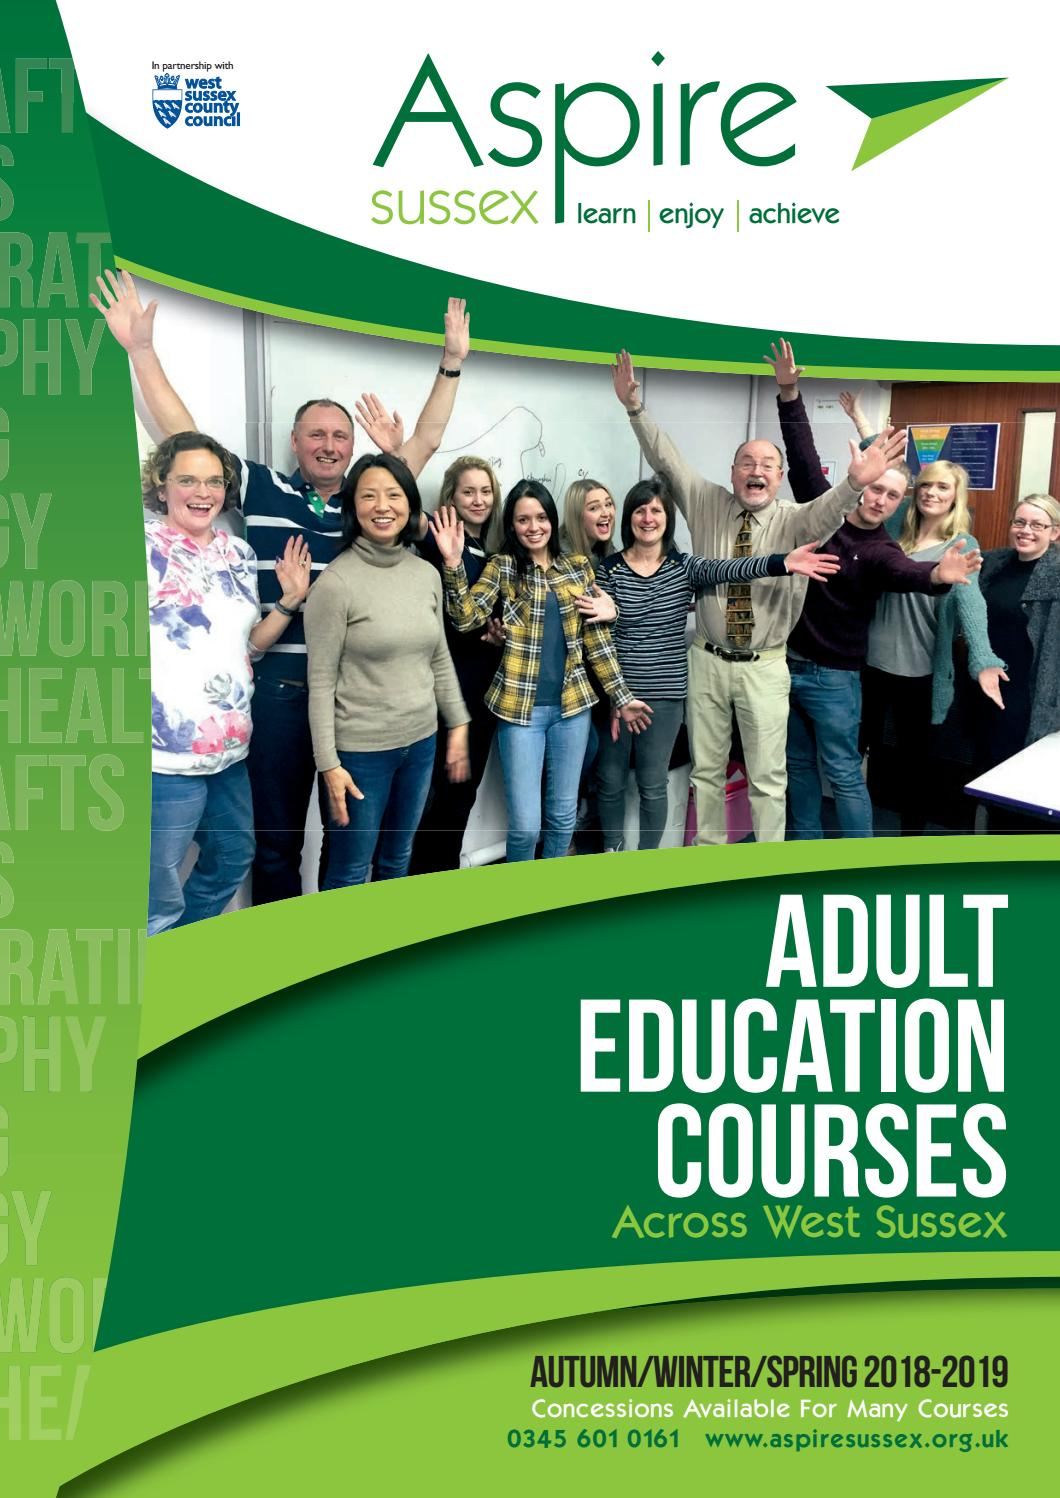 Sussex county adult education